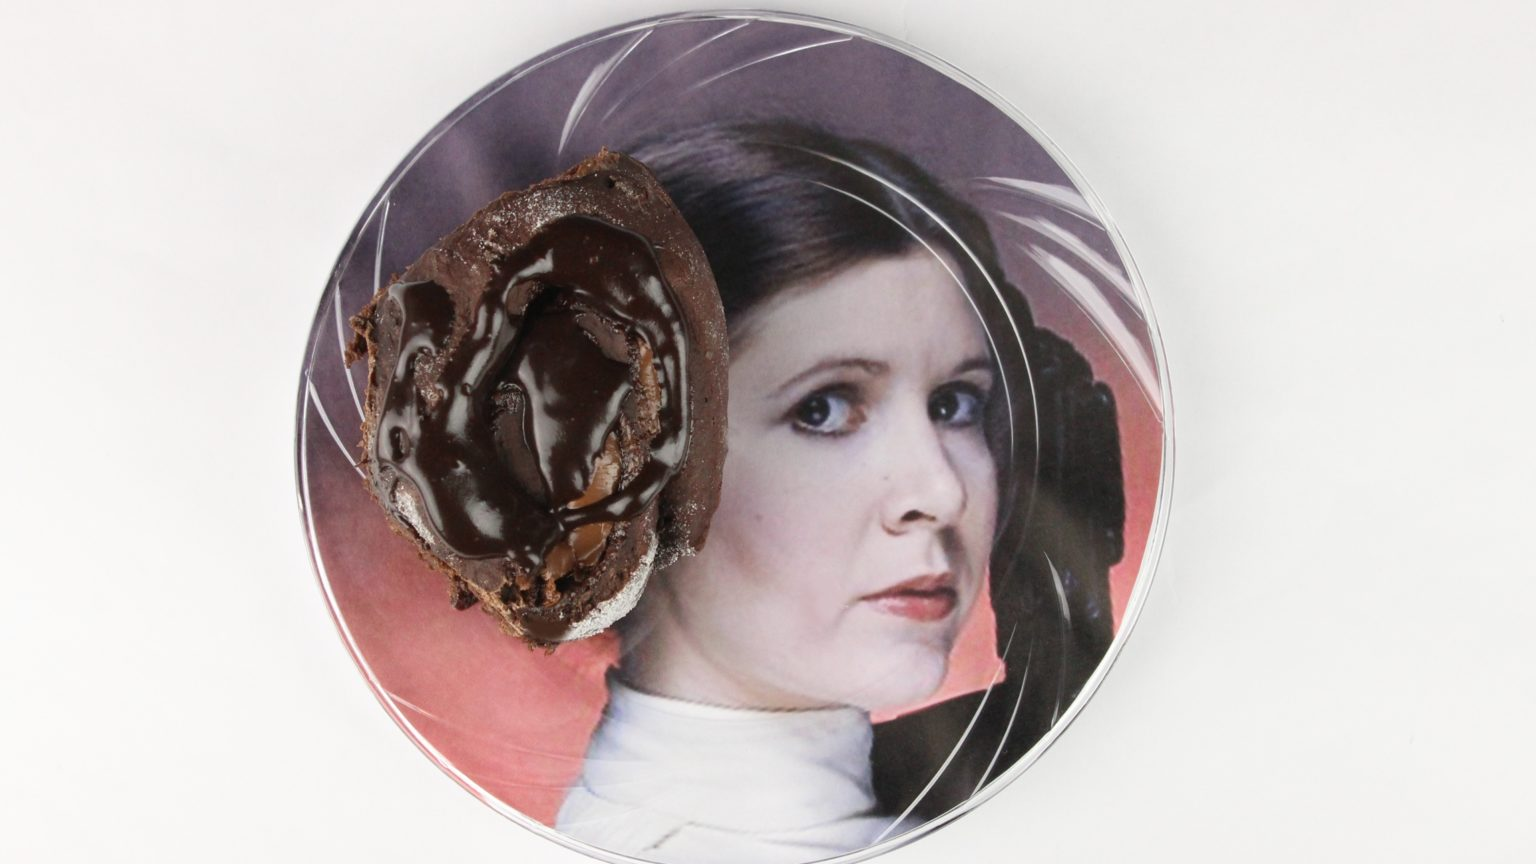 Princess Leia Nutella Buns Starwars Com